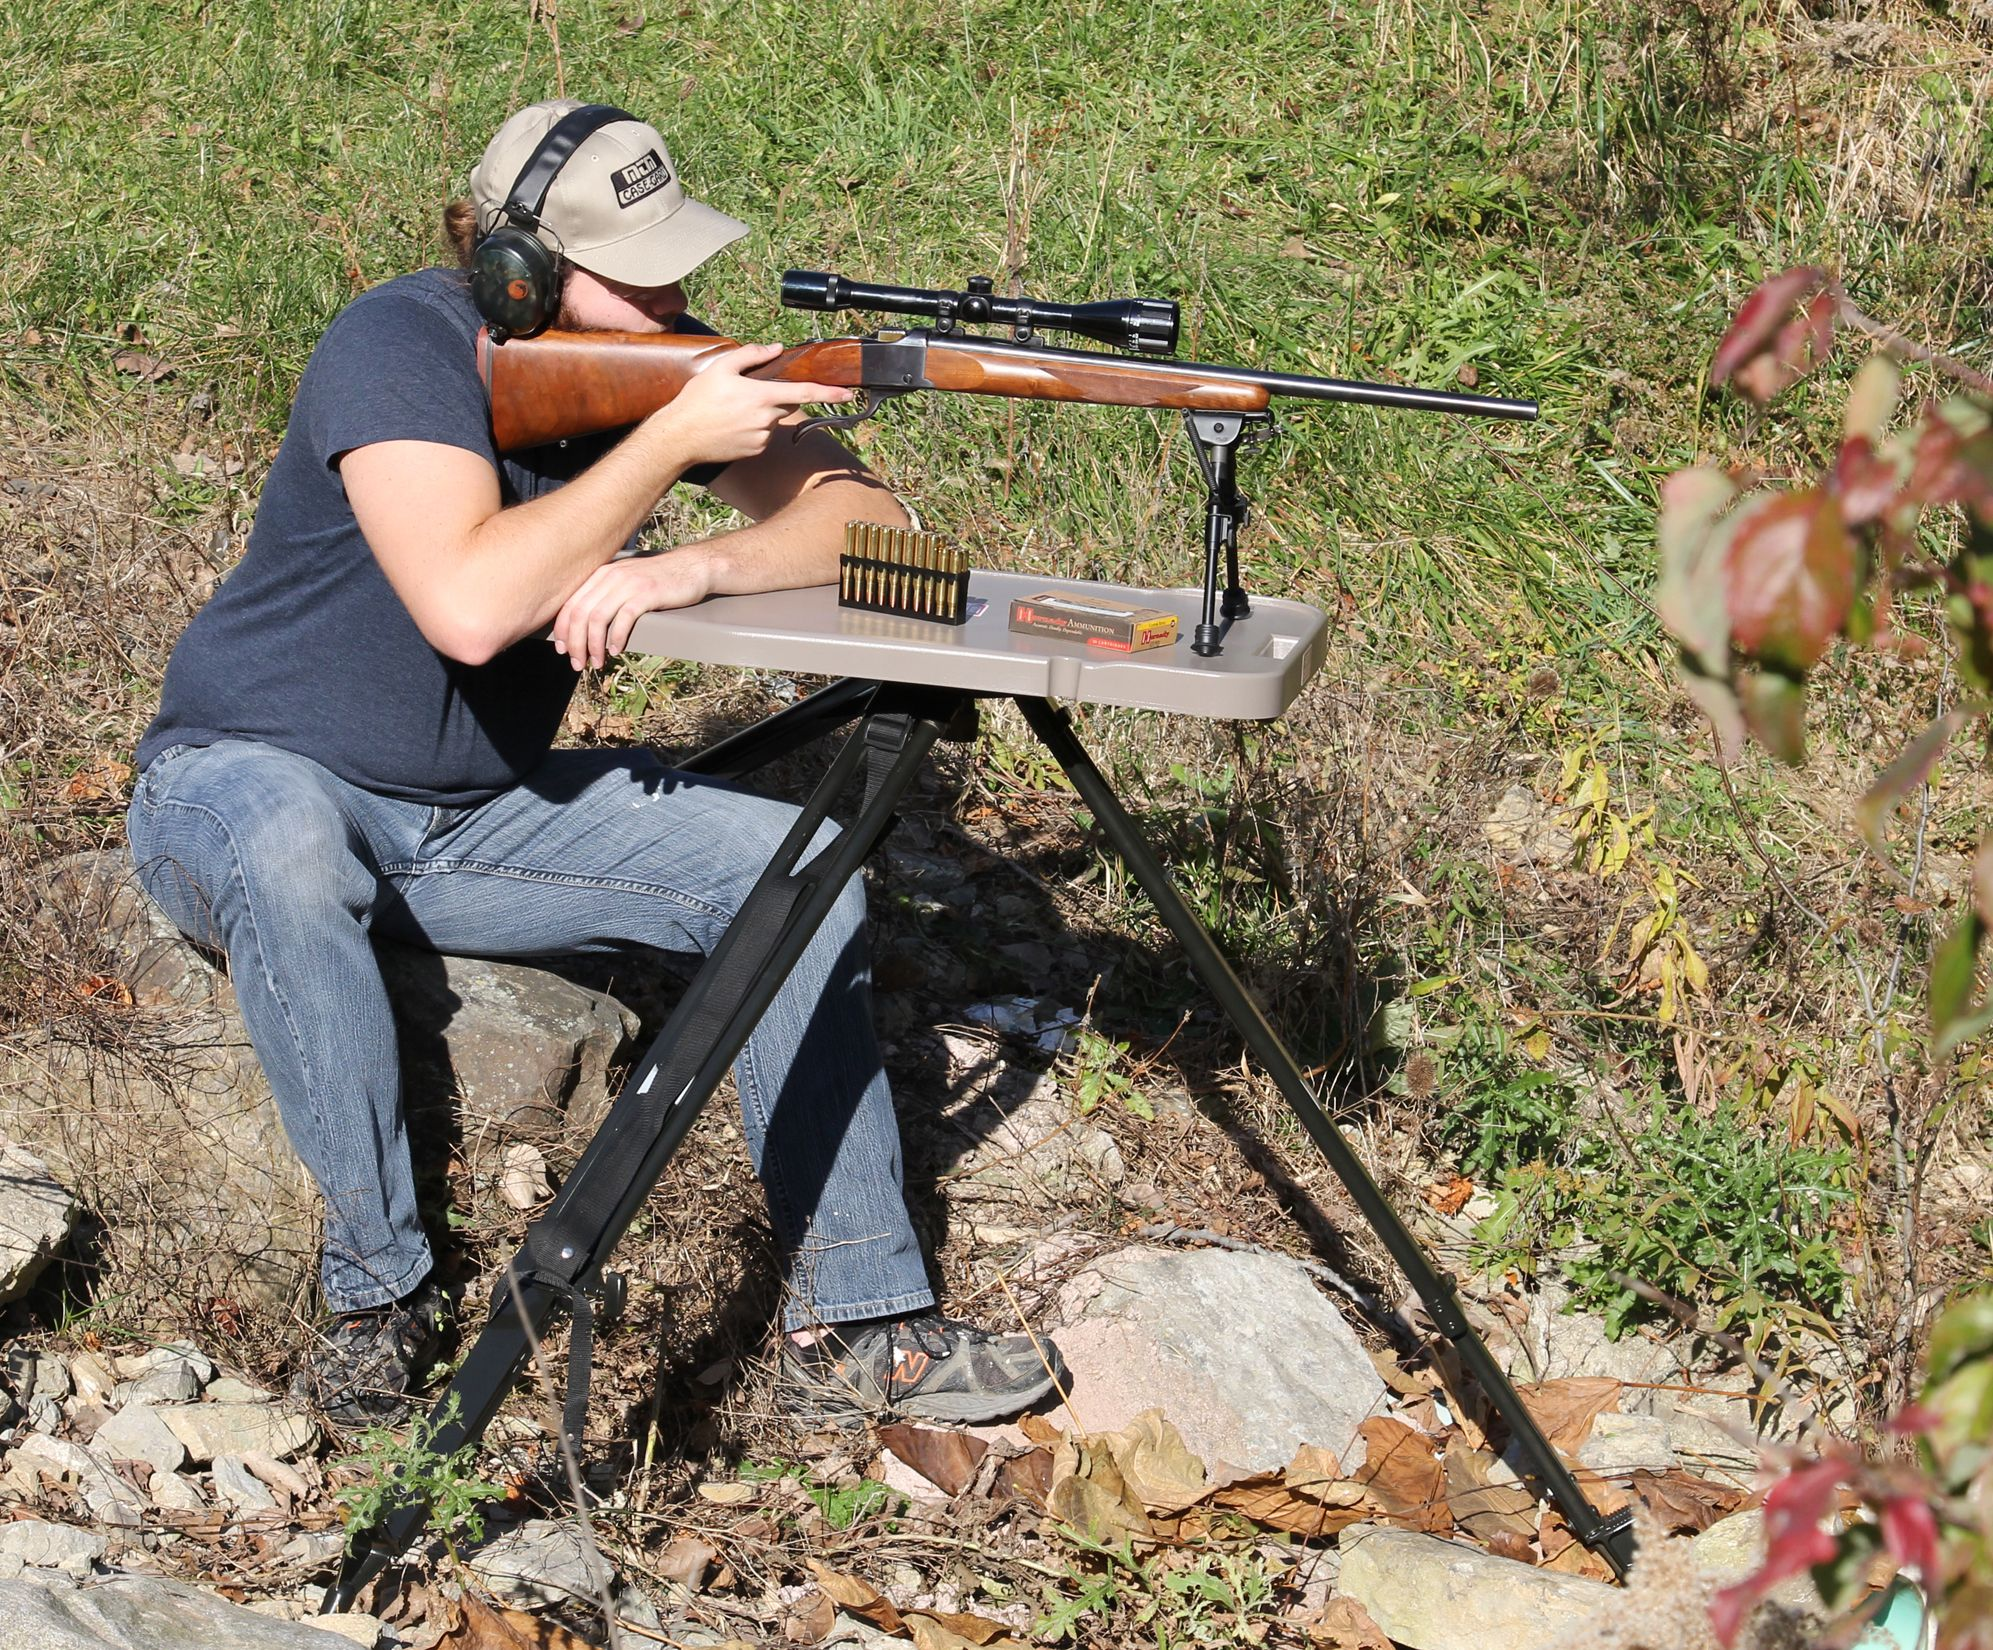 mtm adjustable bench rest style shooting table guns pinterest rh pinterest com